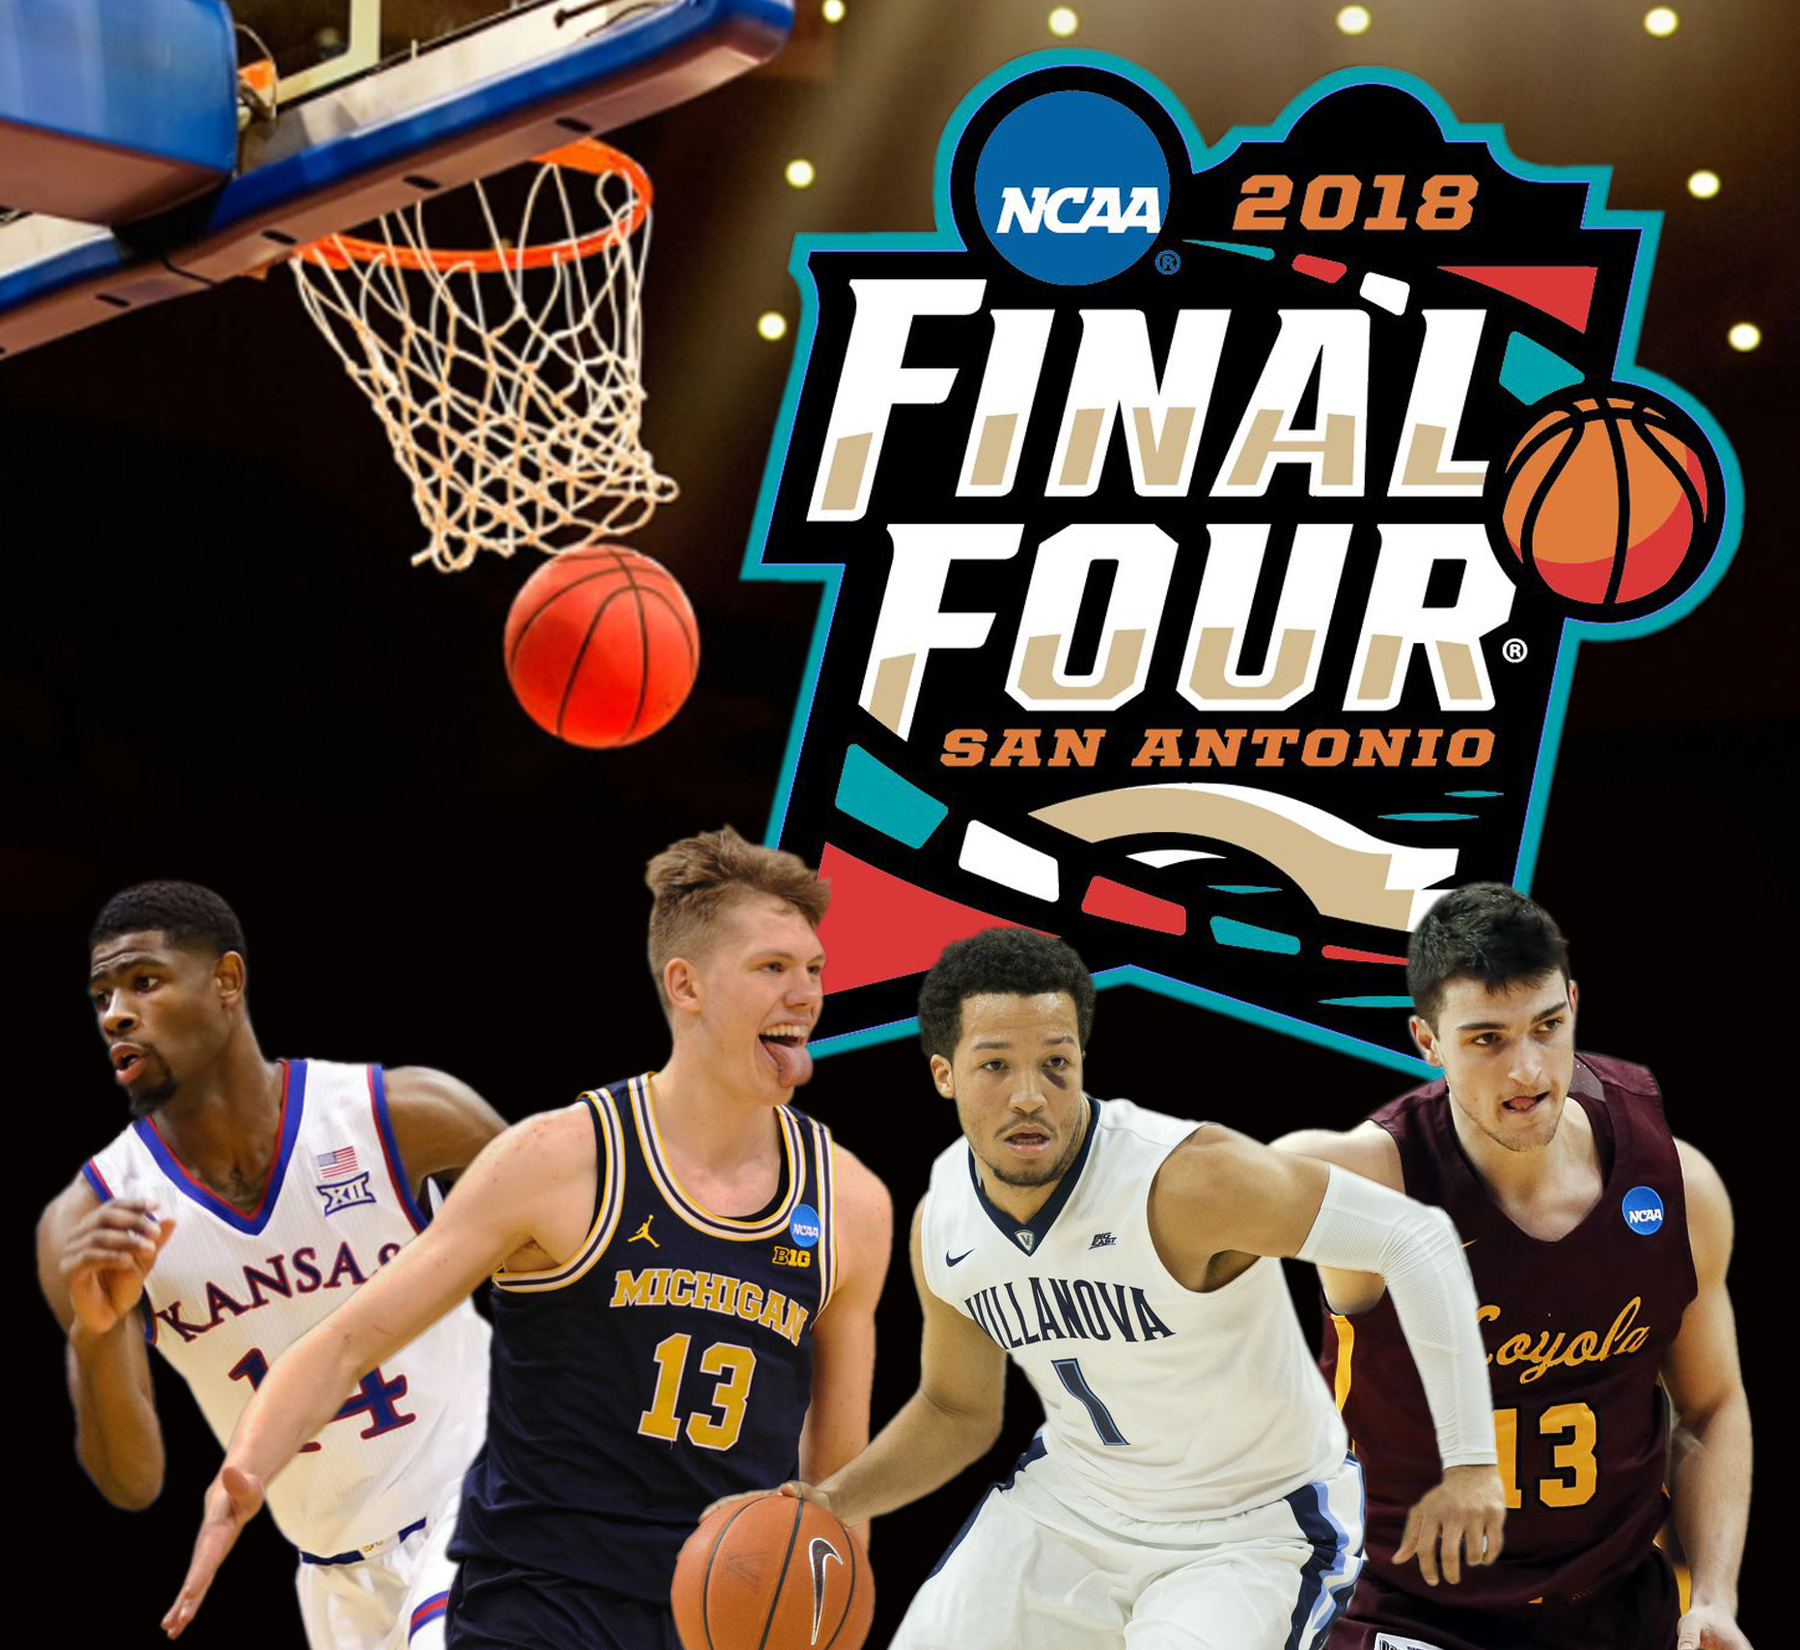 final four image 3.jpg